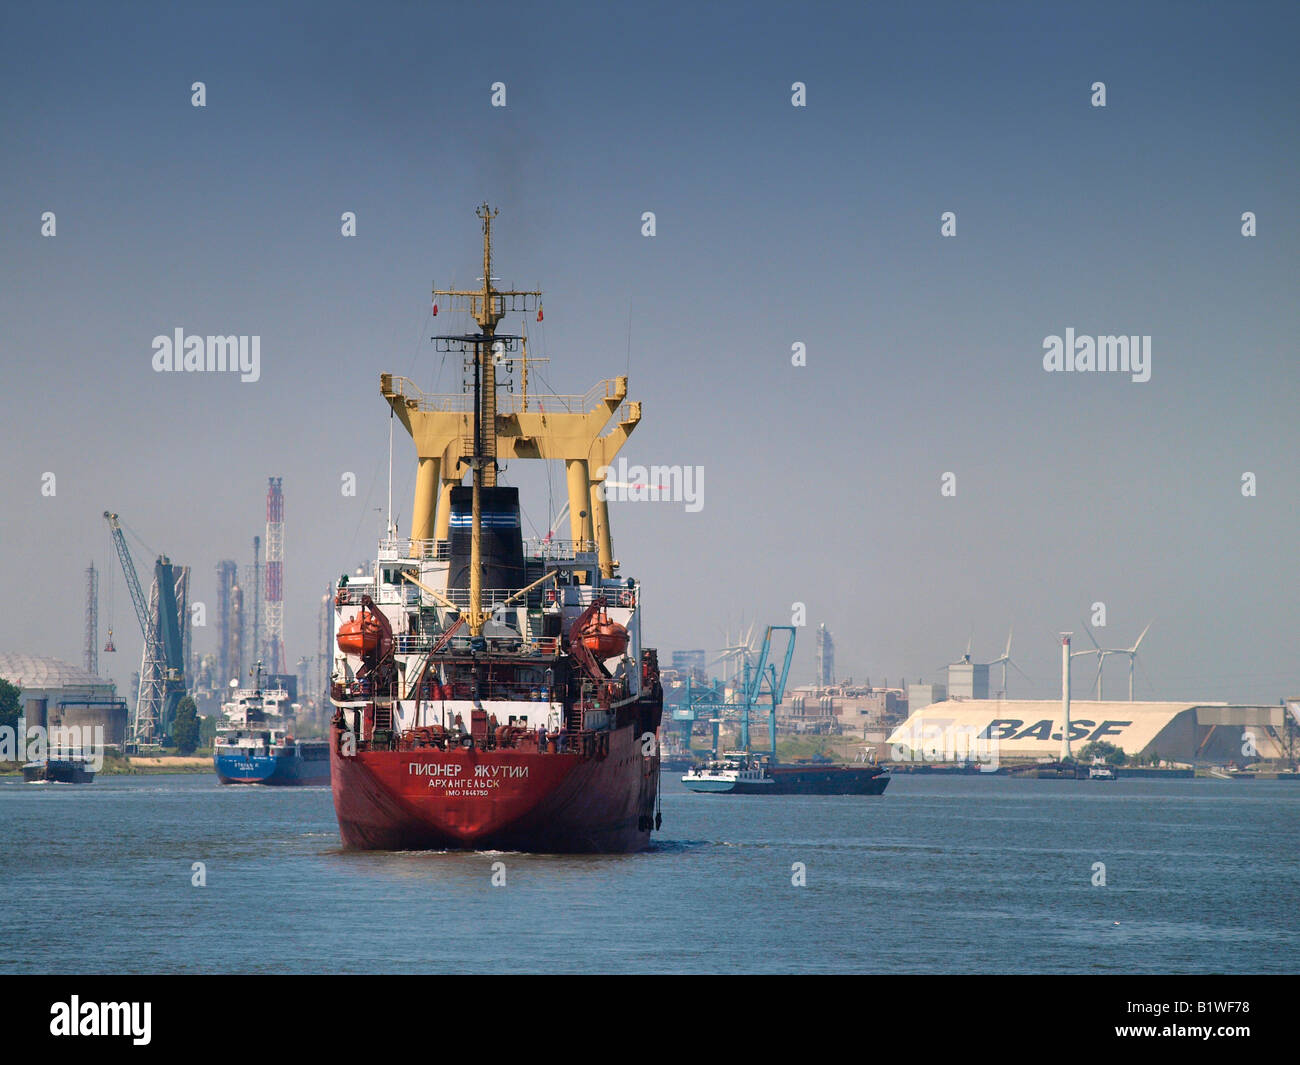 the port of Antwerp Belgium is a center of the chemical industry as well with companies like BASF and Bayer present - Stock Image